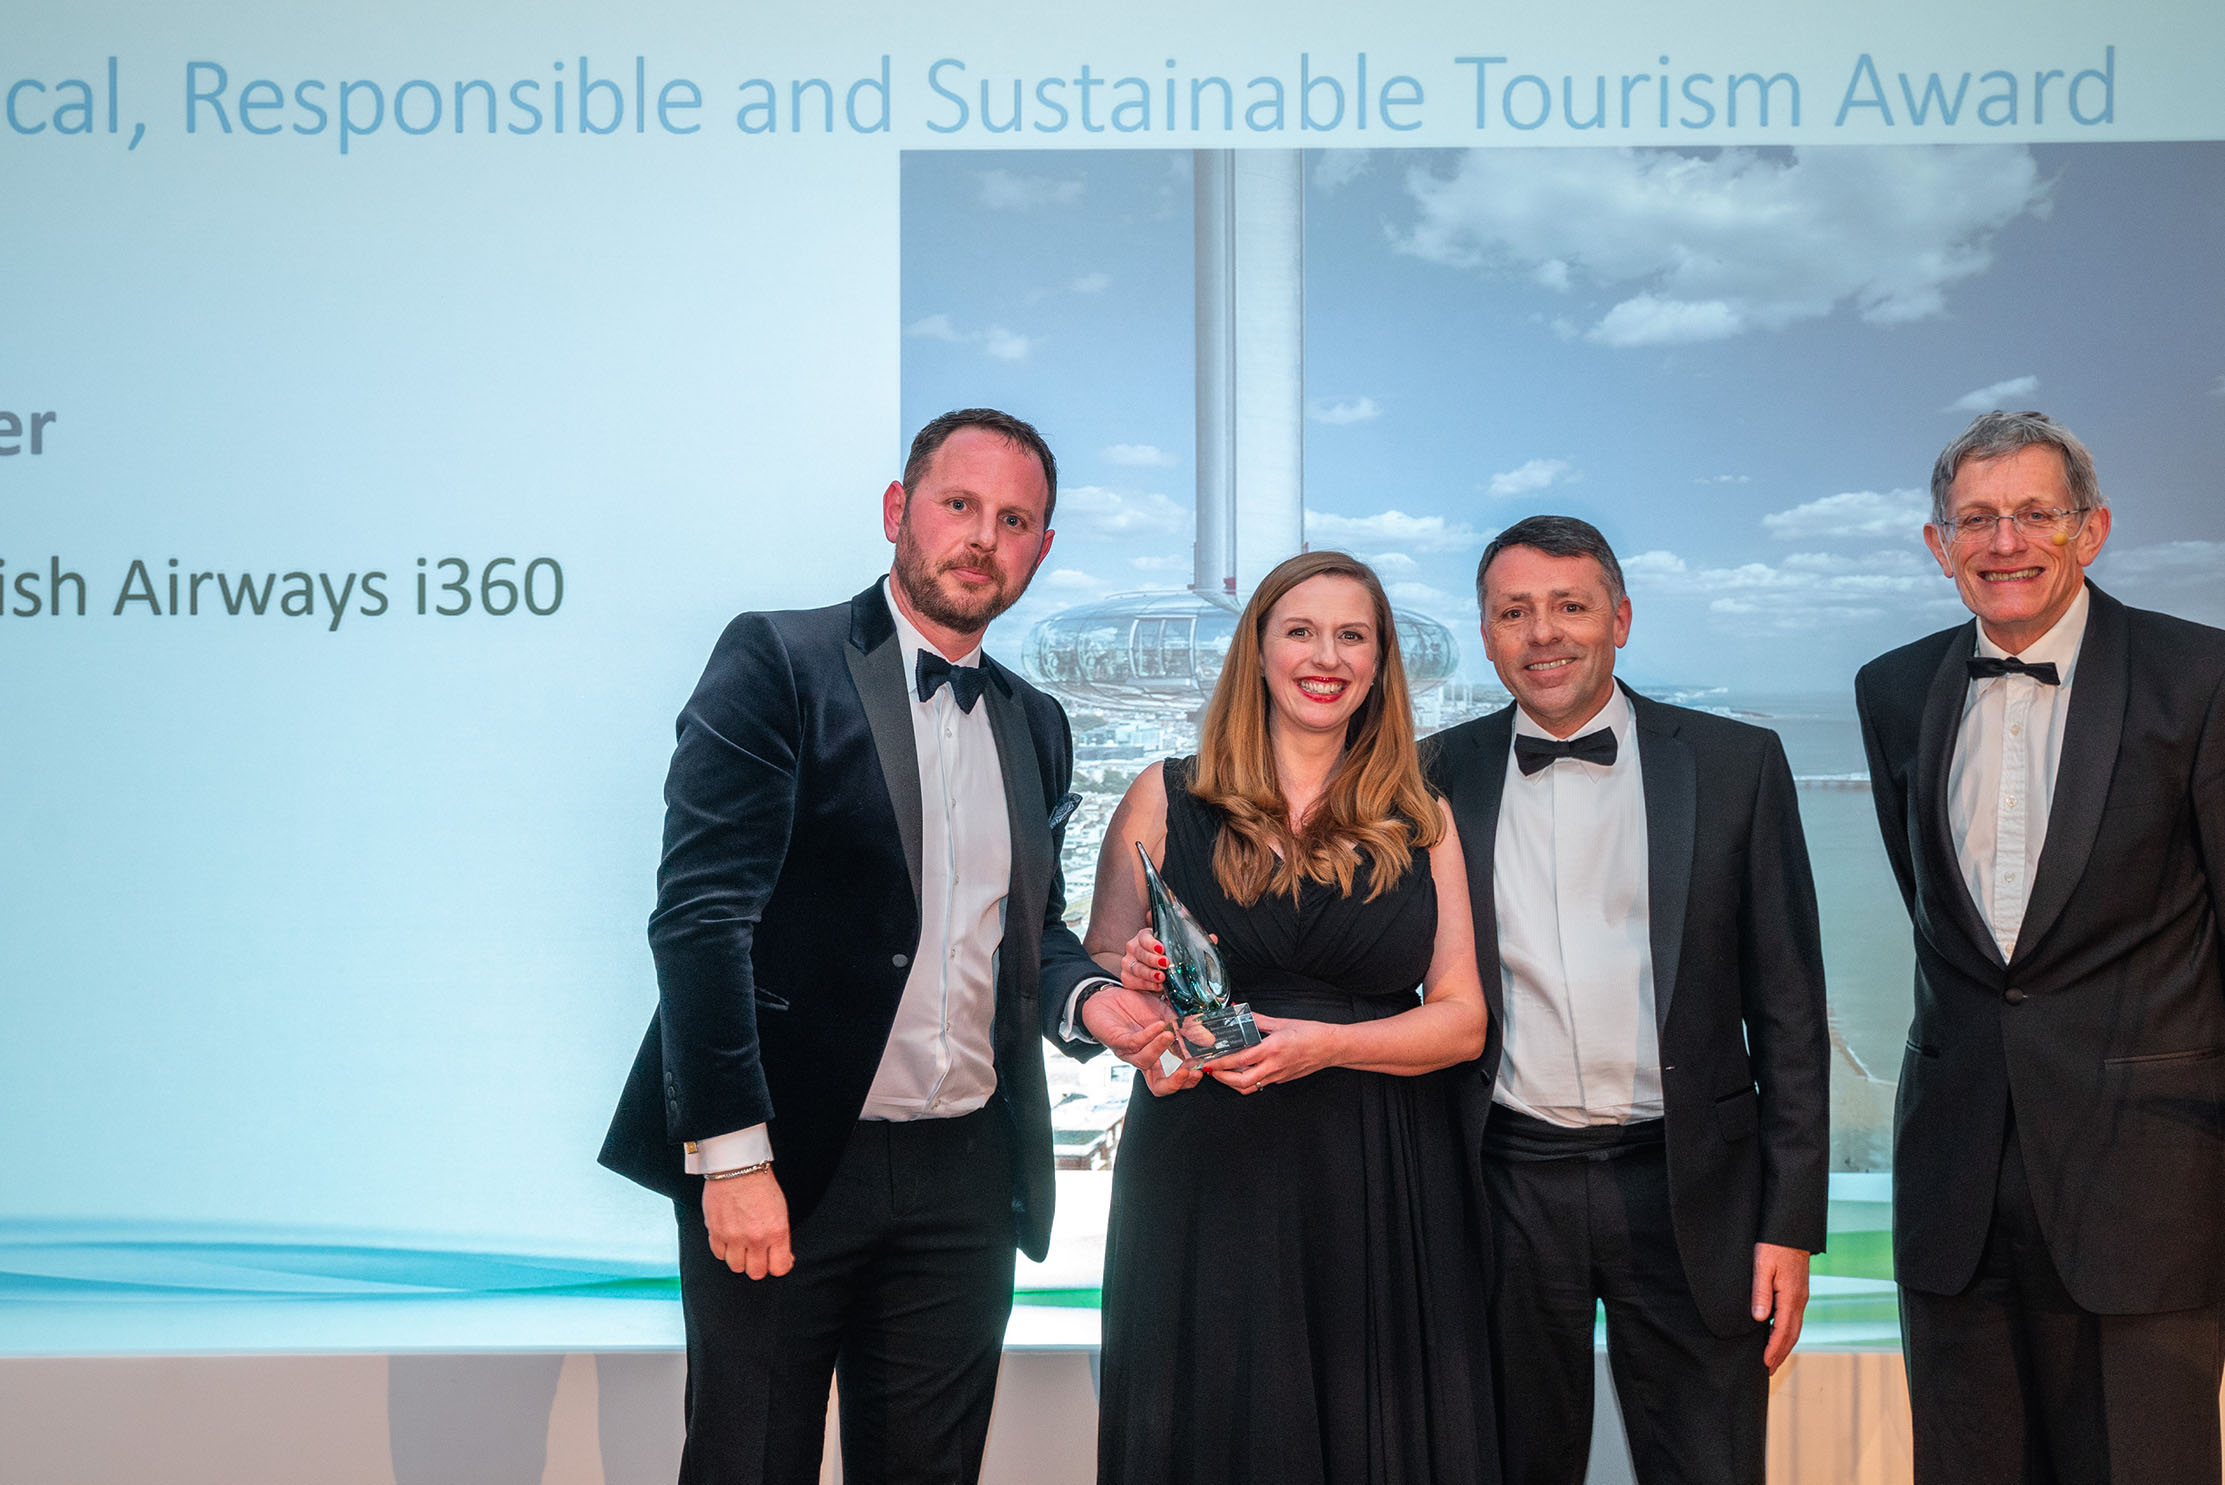 Brighton's BA i360 has won the Silver category for the Ethical, Responsible and Sustainable Tourism Award at the Beautiful South Awards for Excellence